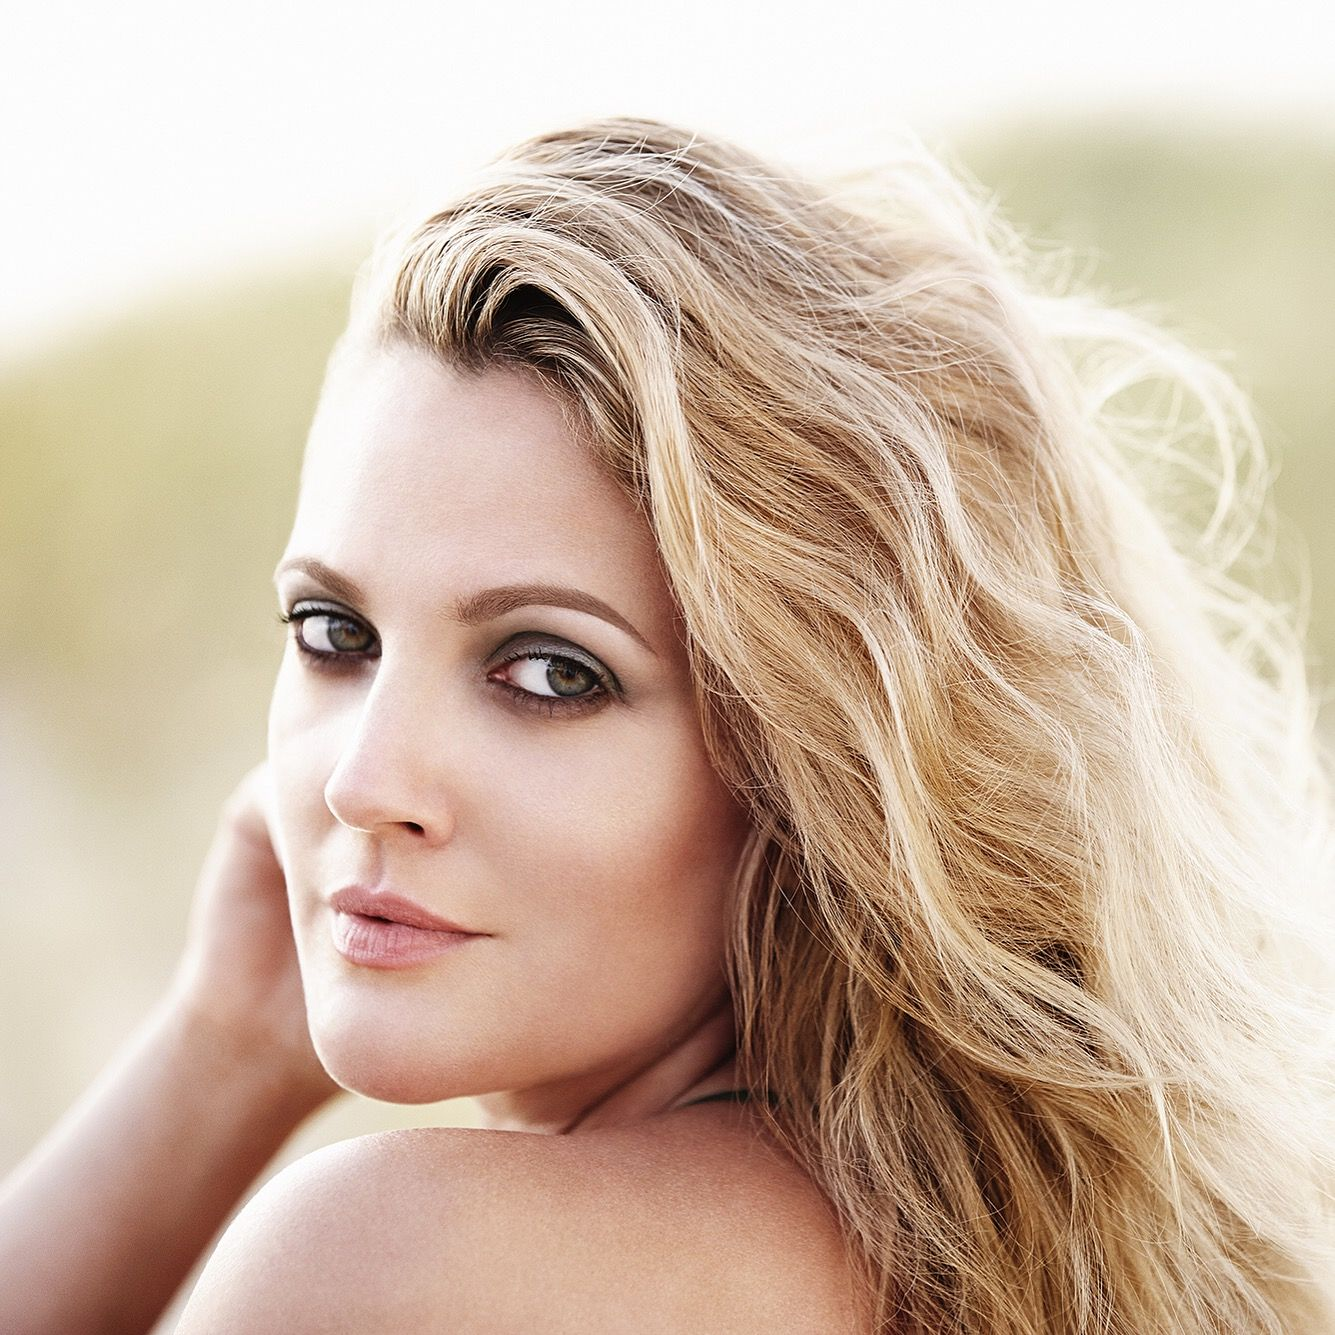 Brow Inspiration From Drew Barrymore Raise Some Brows With Flower